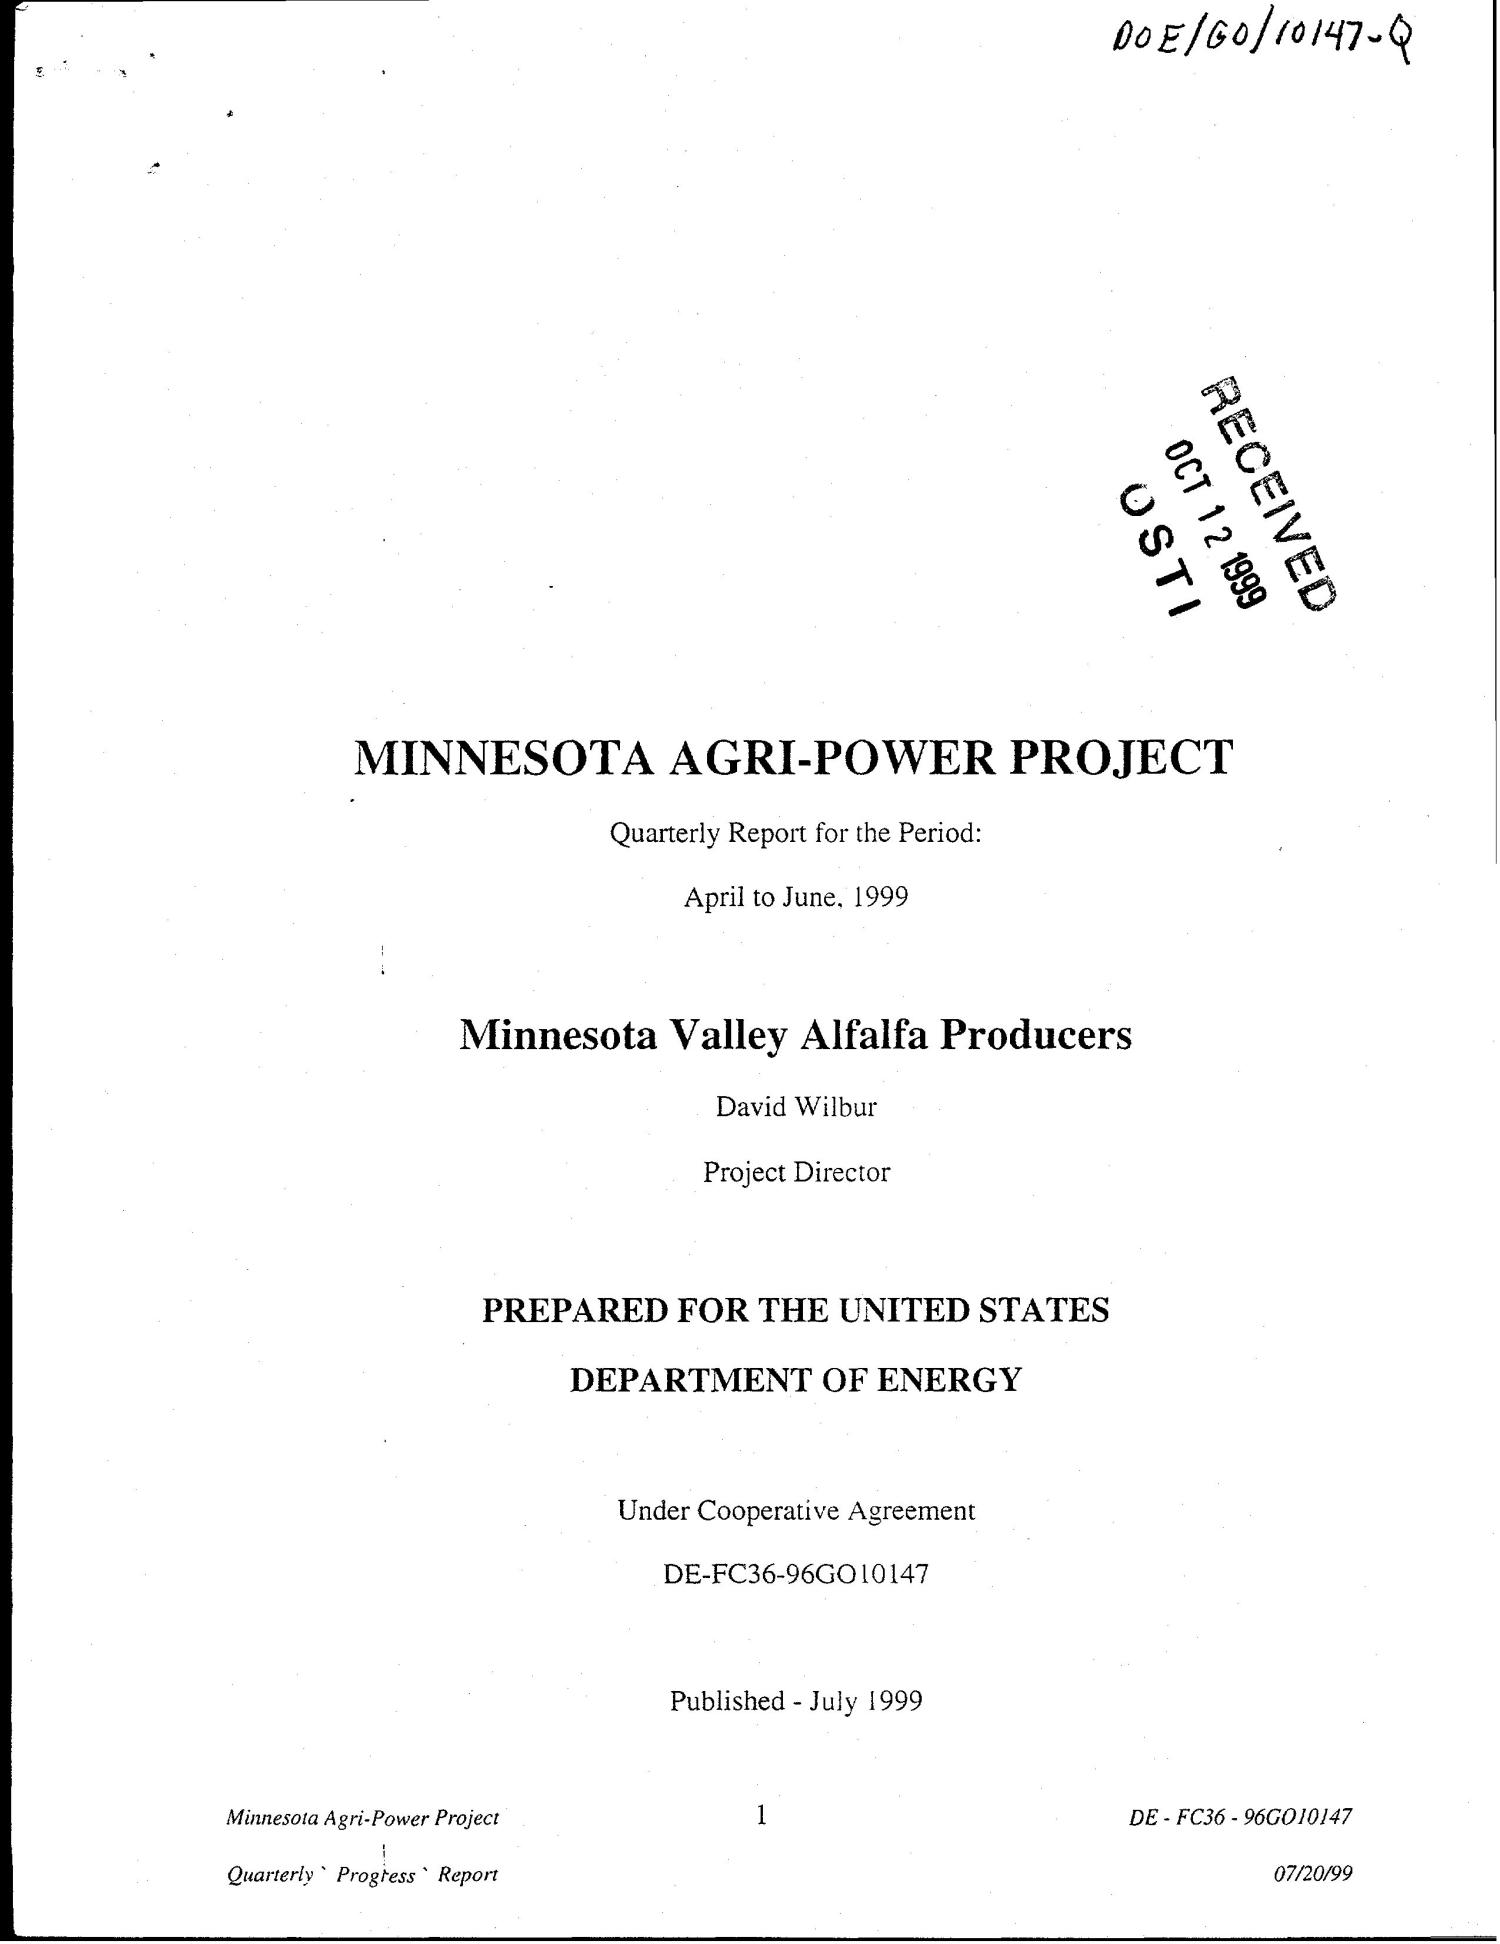 Minnesota Agri-Power Project. Quarterly report, April-June 1999                                                                                                      [Sequence #]: 1 of 15